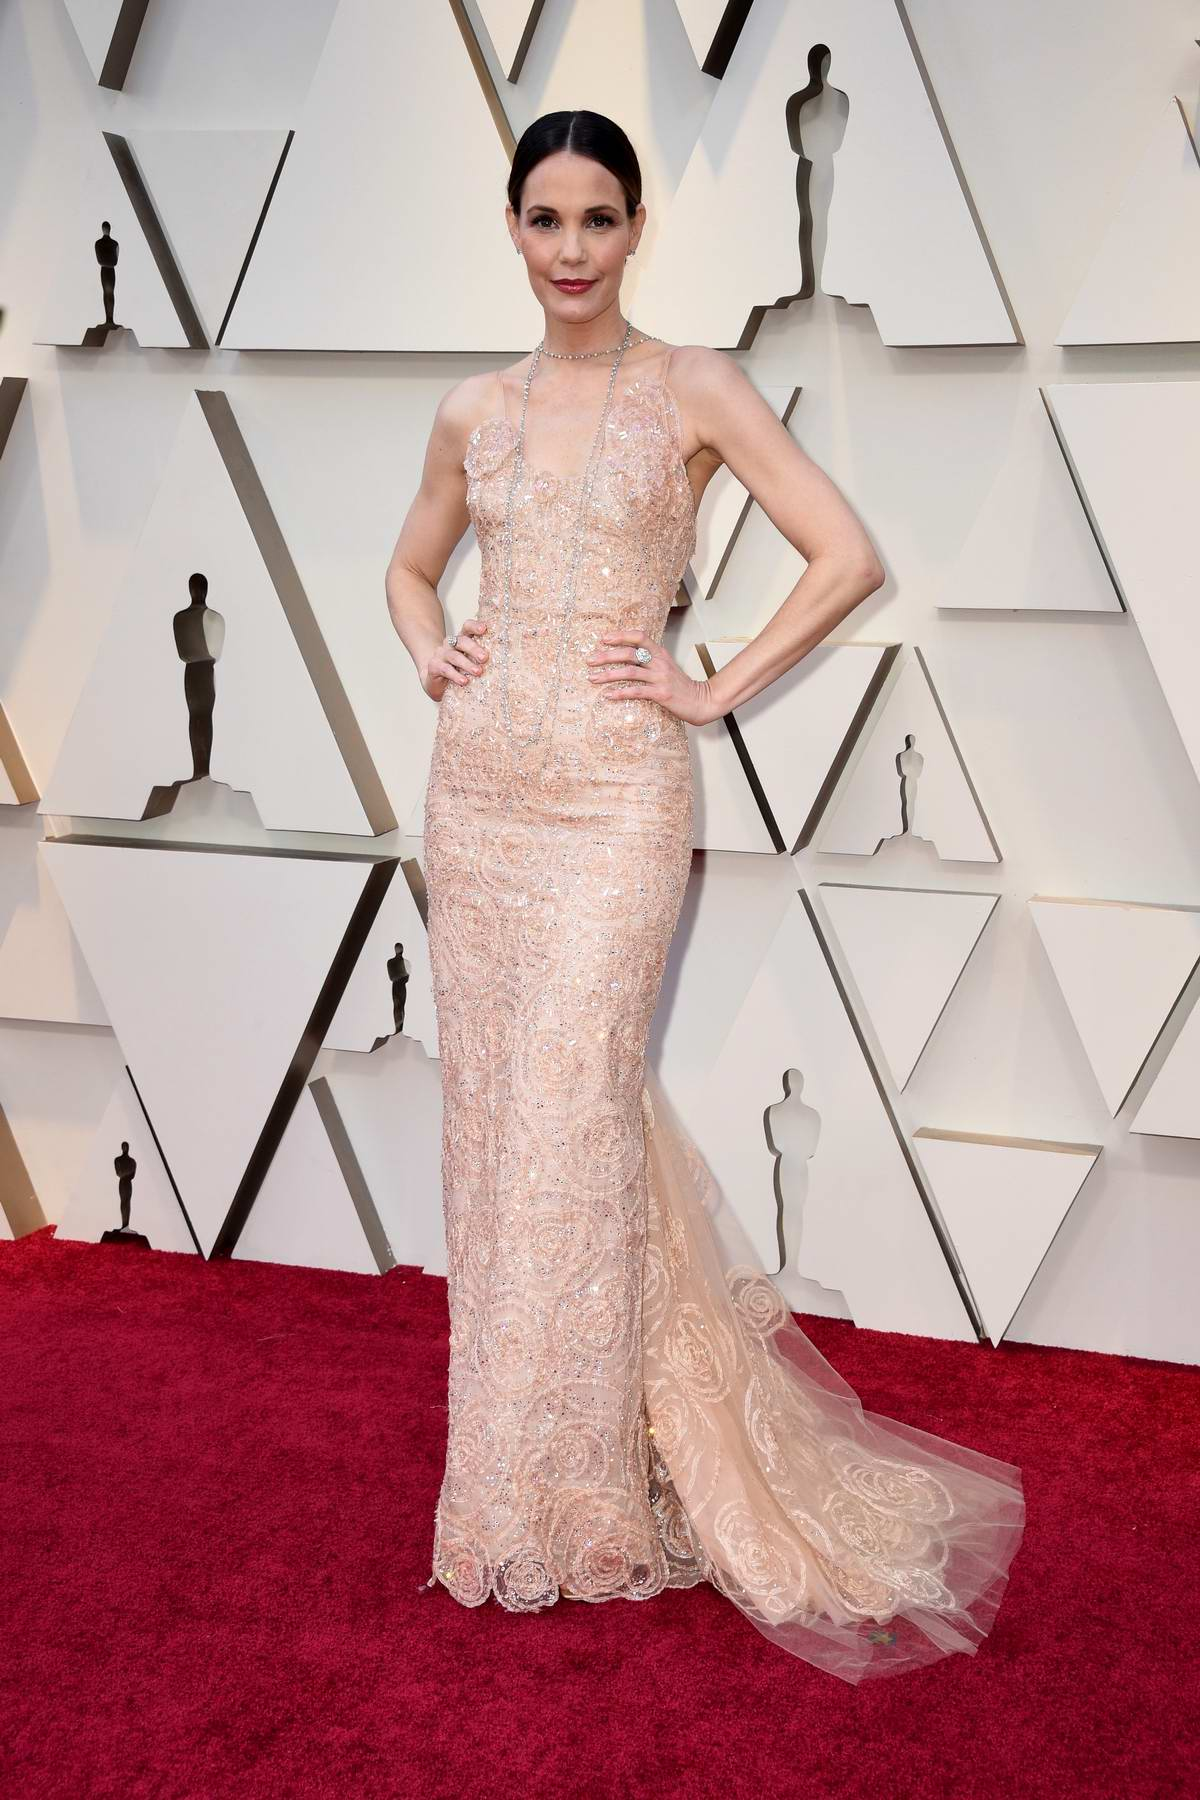 Leslie Bibb attends the 91st Annual Academy Awards (Oscars 2019) held at the Dolby Theatre in Hollywood, California